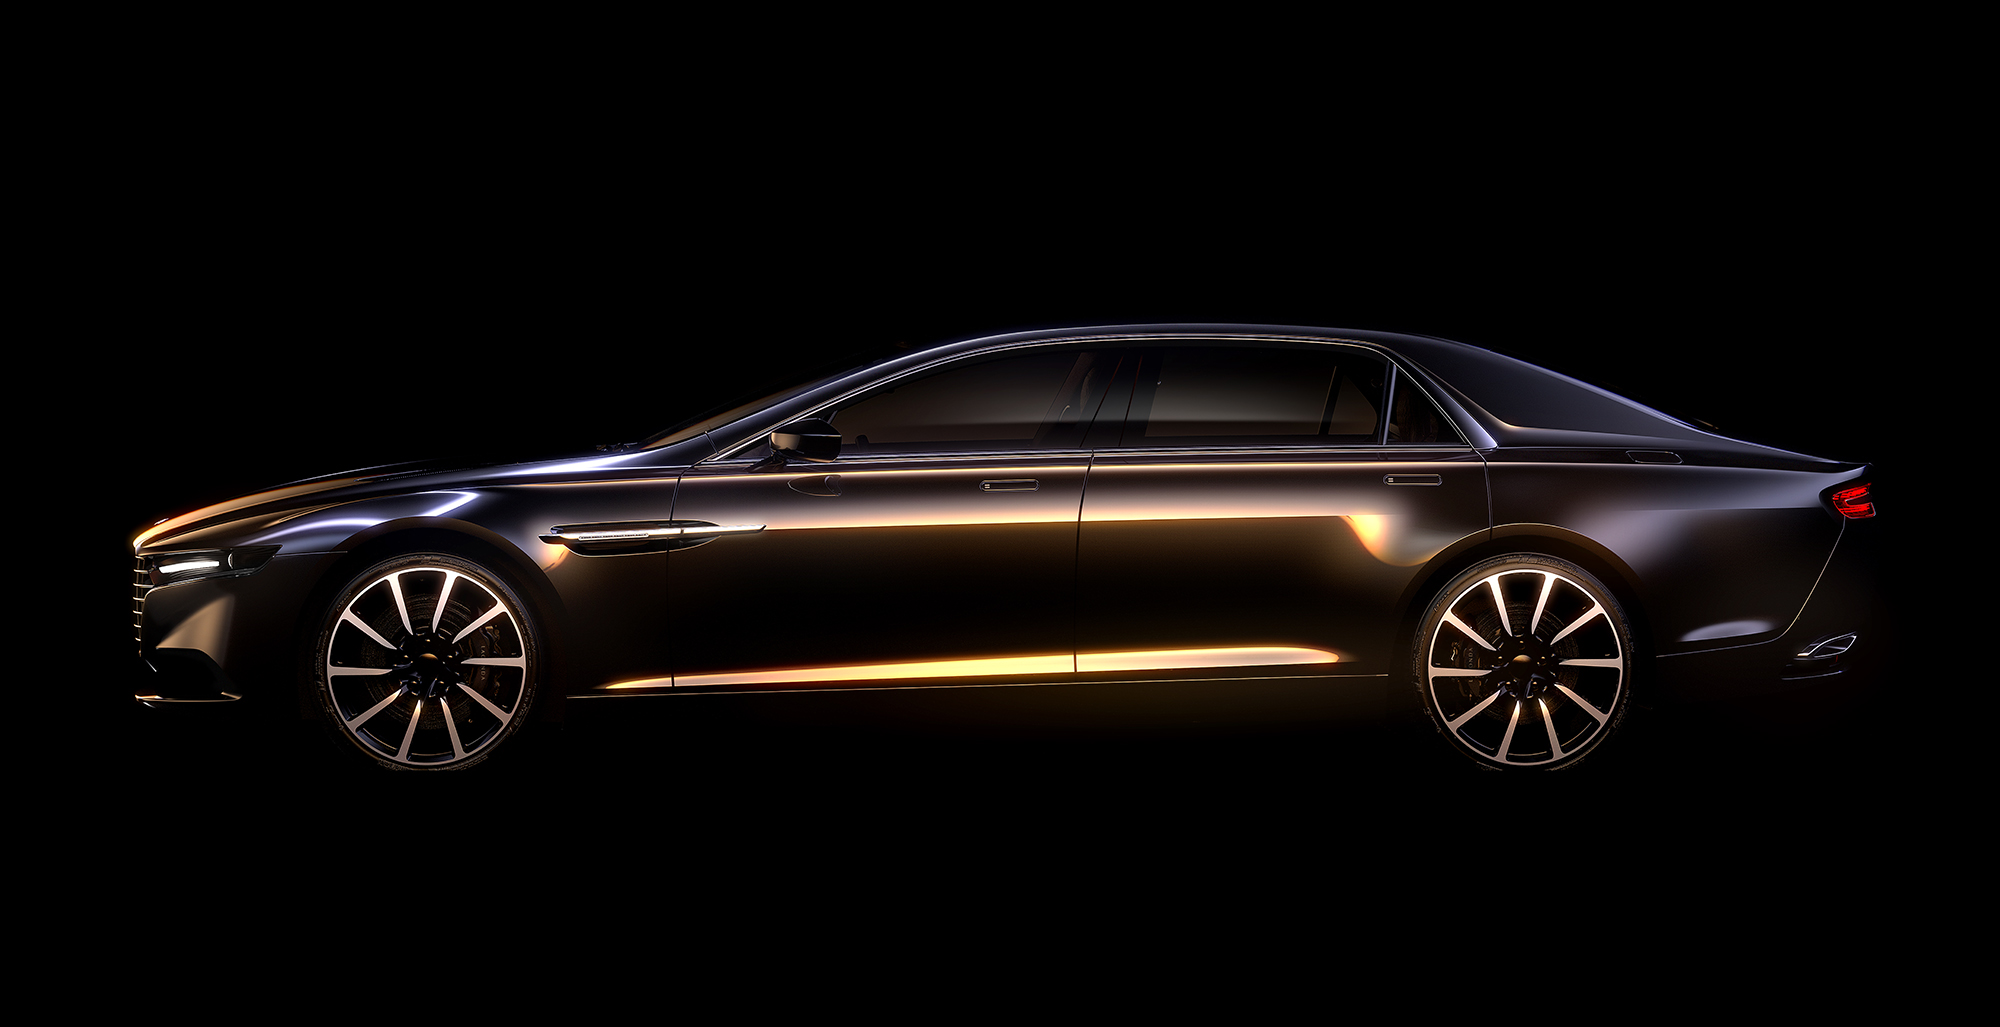 Aston Martin Lagonda Previewed, Confirmed For 'Strictly Limited' Production